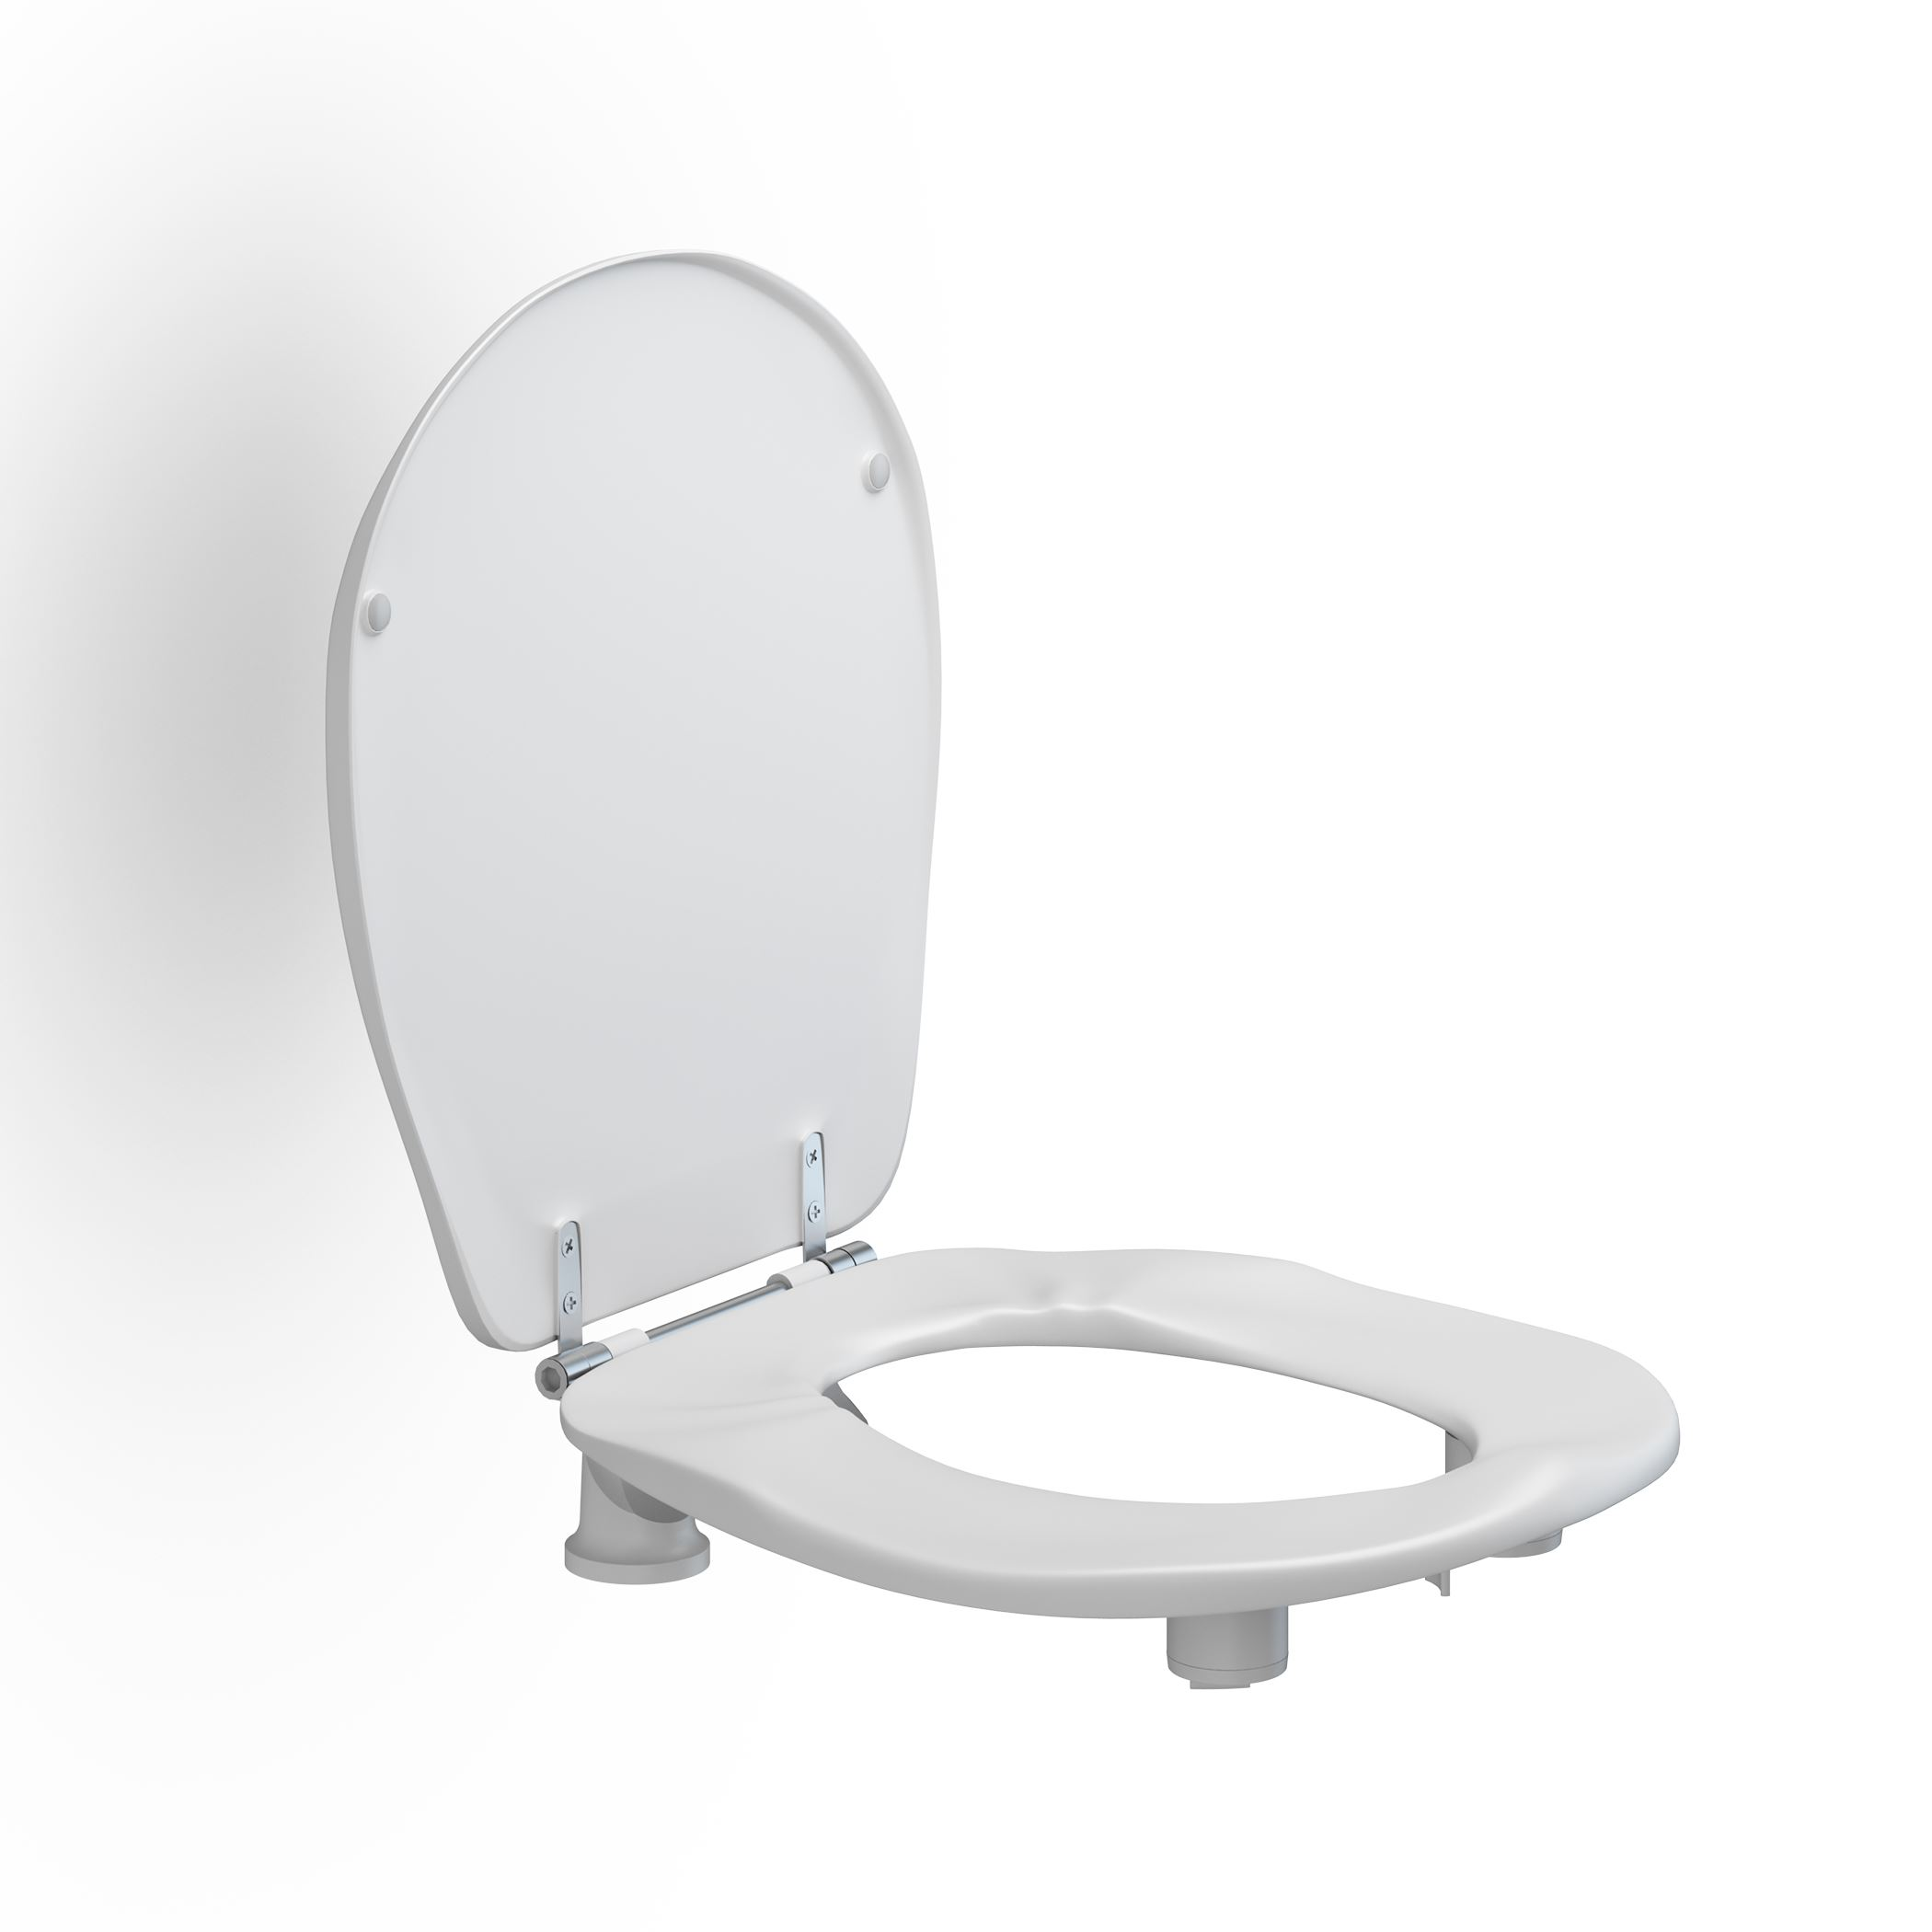 Toilet seat Ergosit with cover, 50 mm raised